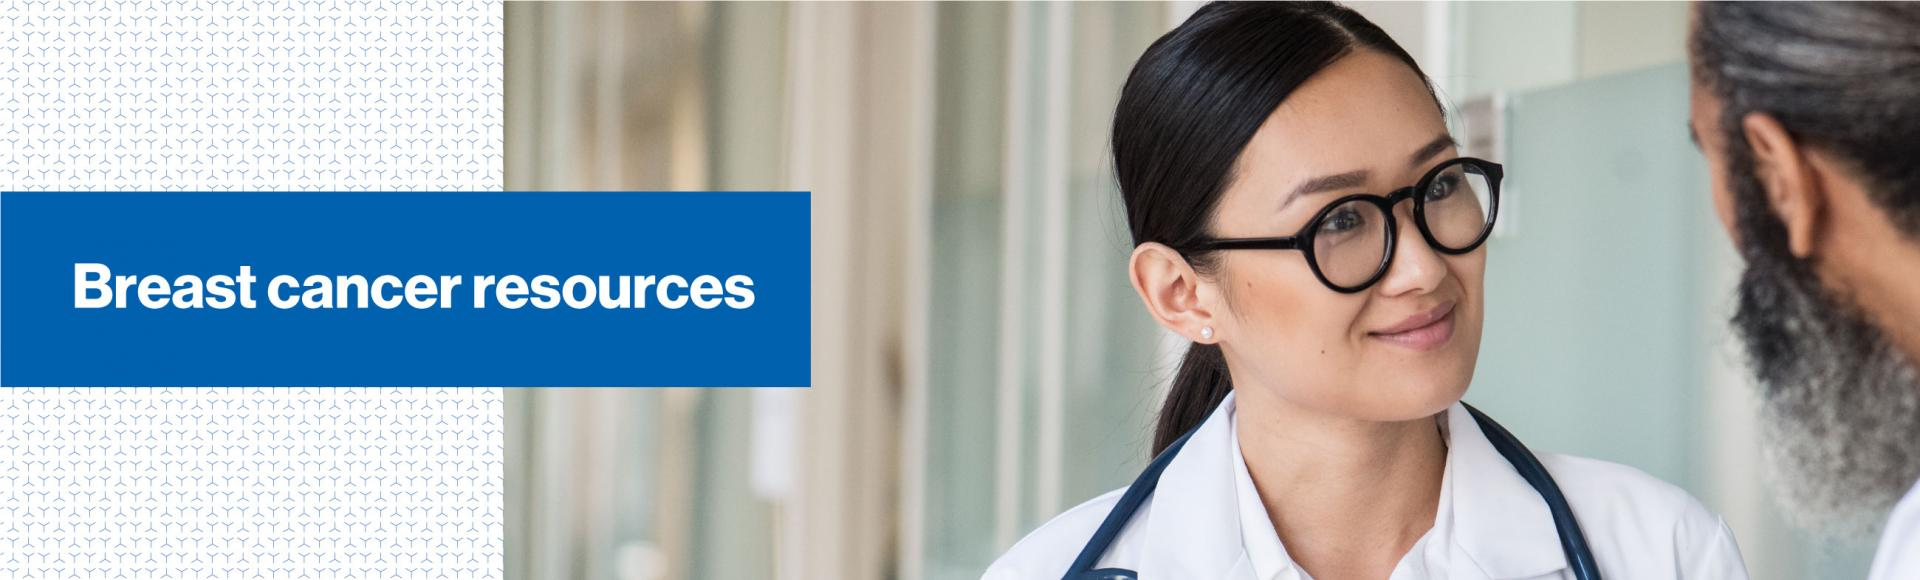 Top banner. Branded banner. Image of a doctor in a white lab coat wearing a stethoscope.